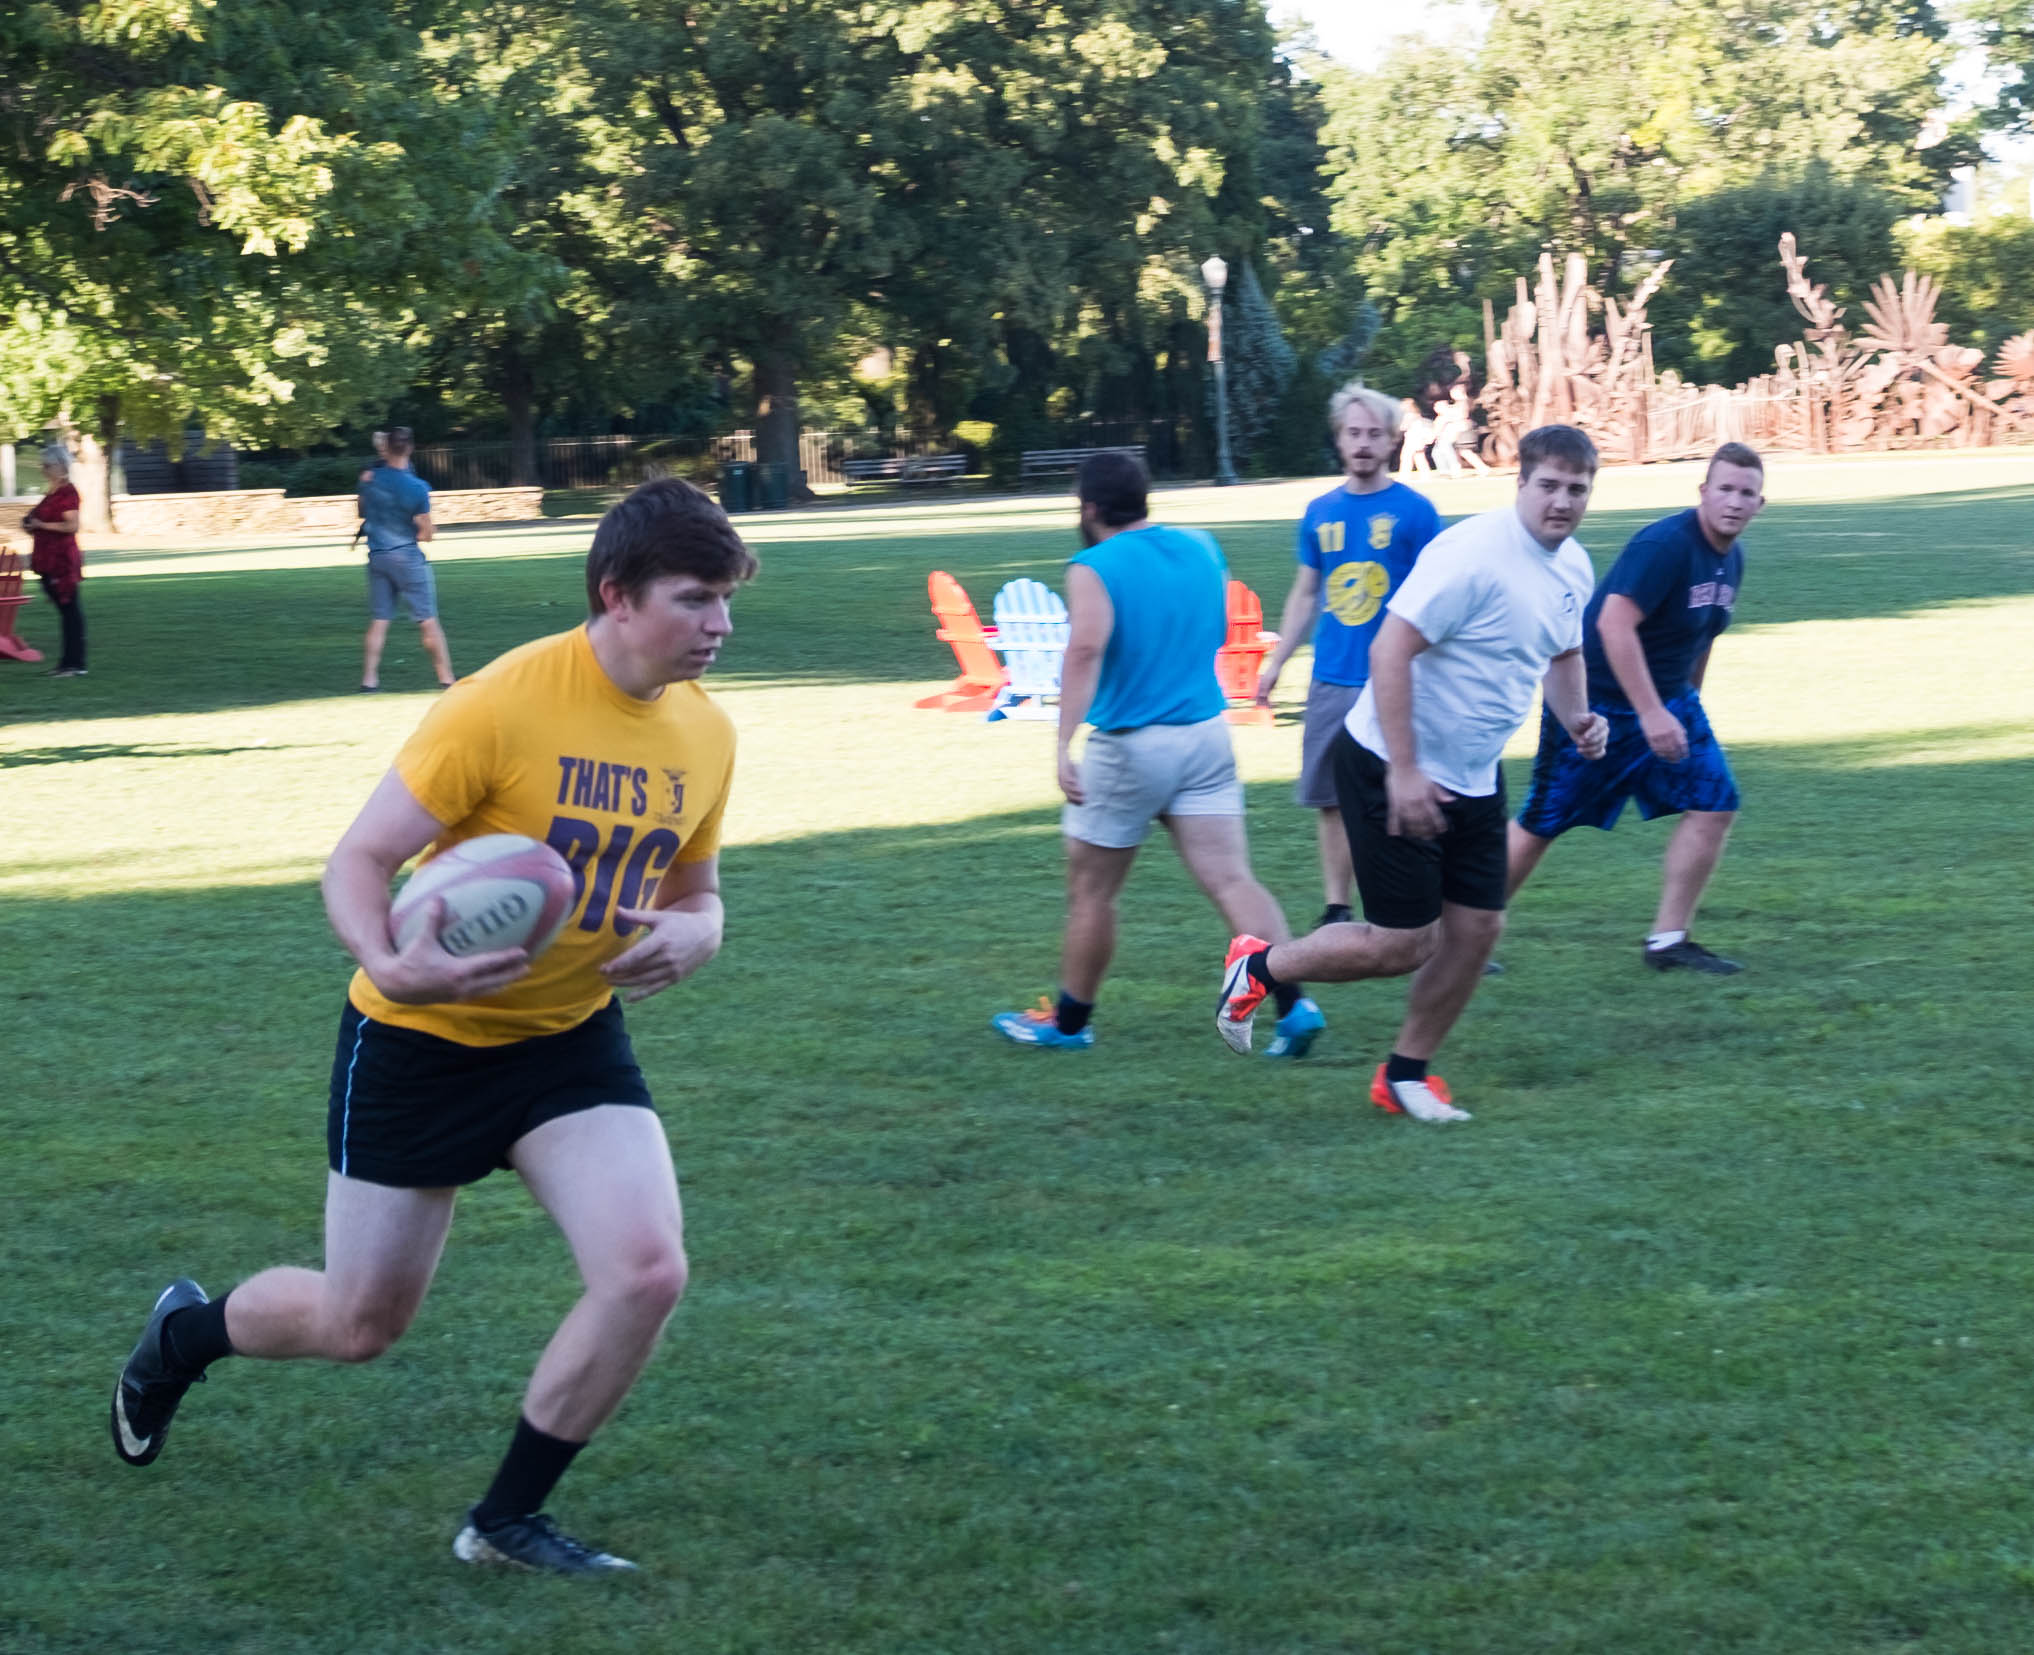 Members of the CWRU Rugby Football Club practice at Wade Oval last Friday before their opening game this week